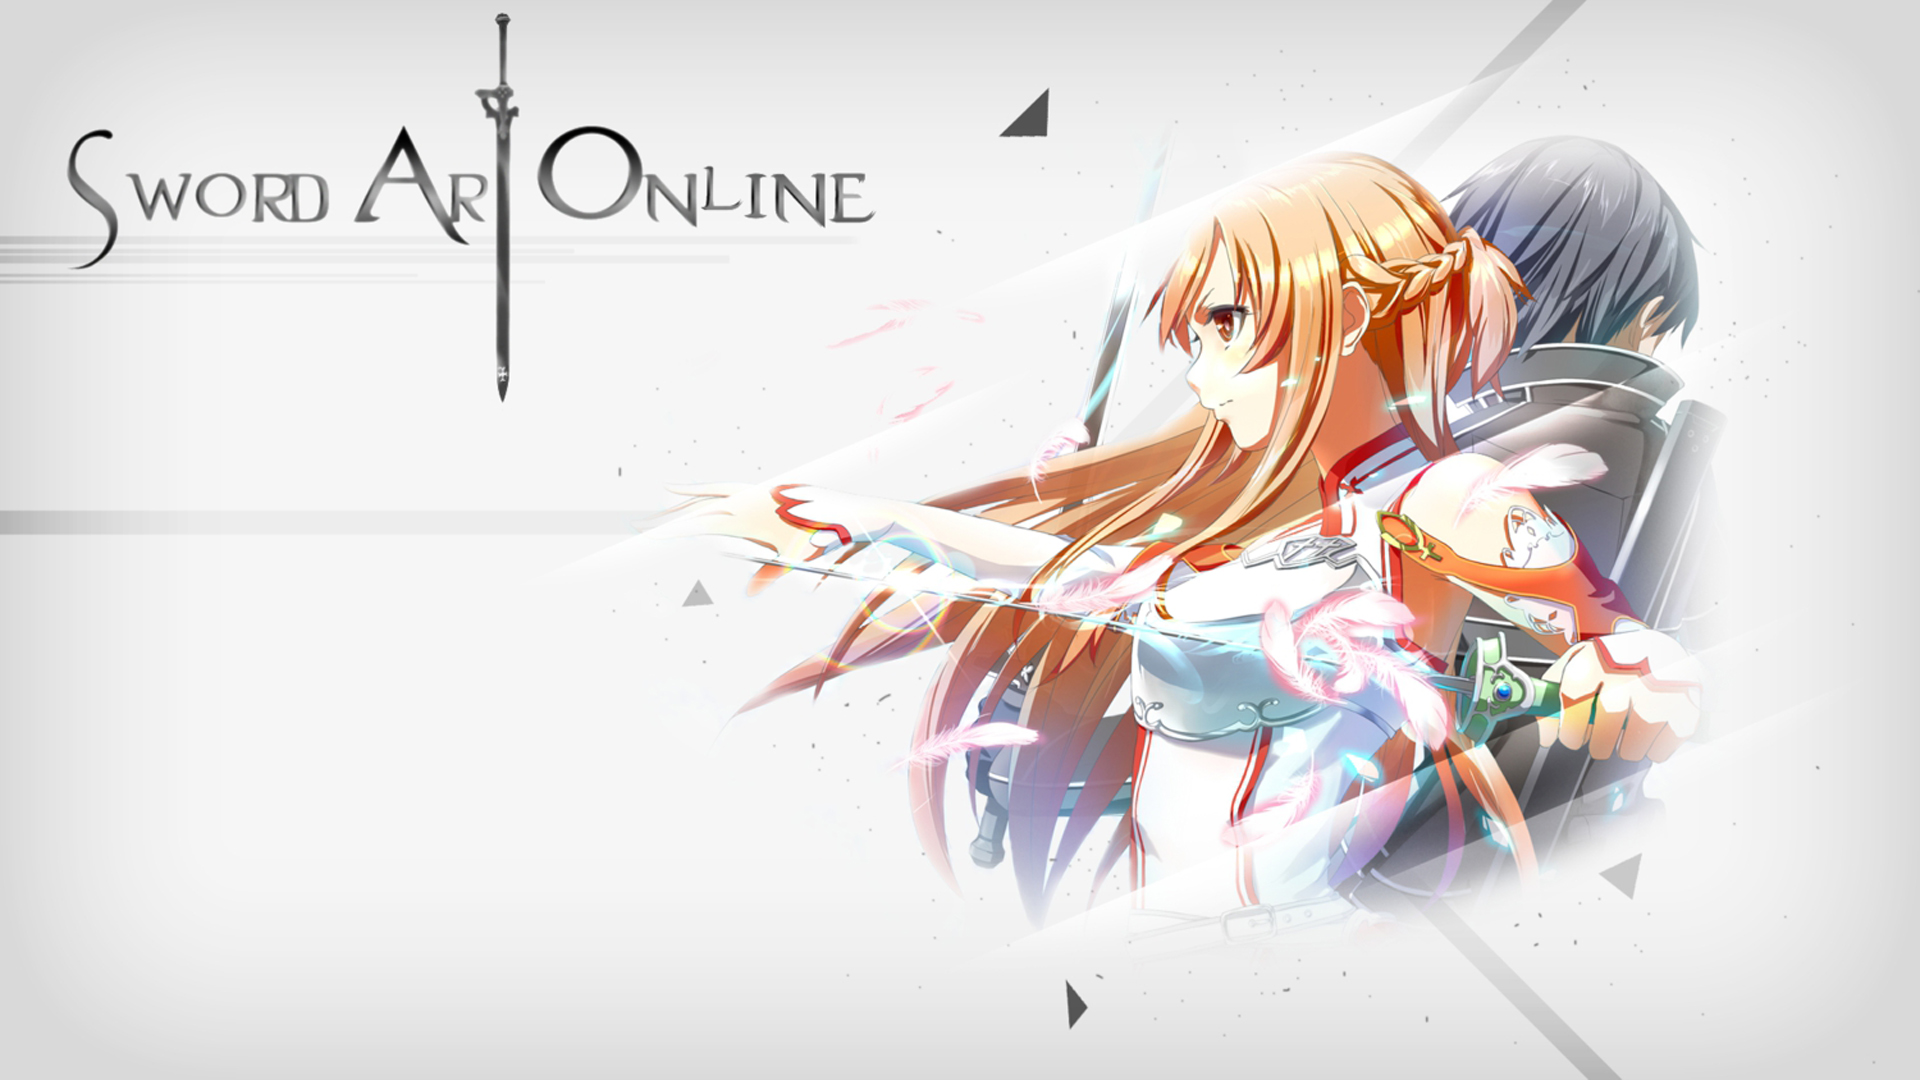 442 Sword Art Online HD Wallpapers | Backgrounds   Wallpaper Abyss